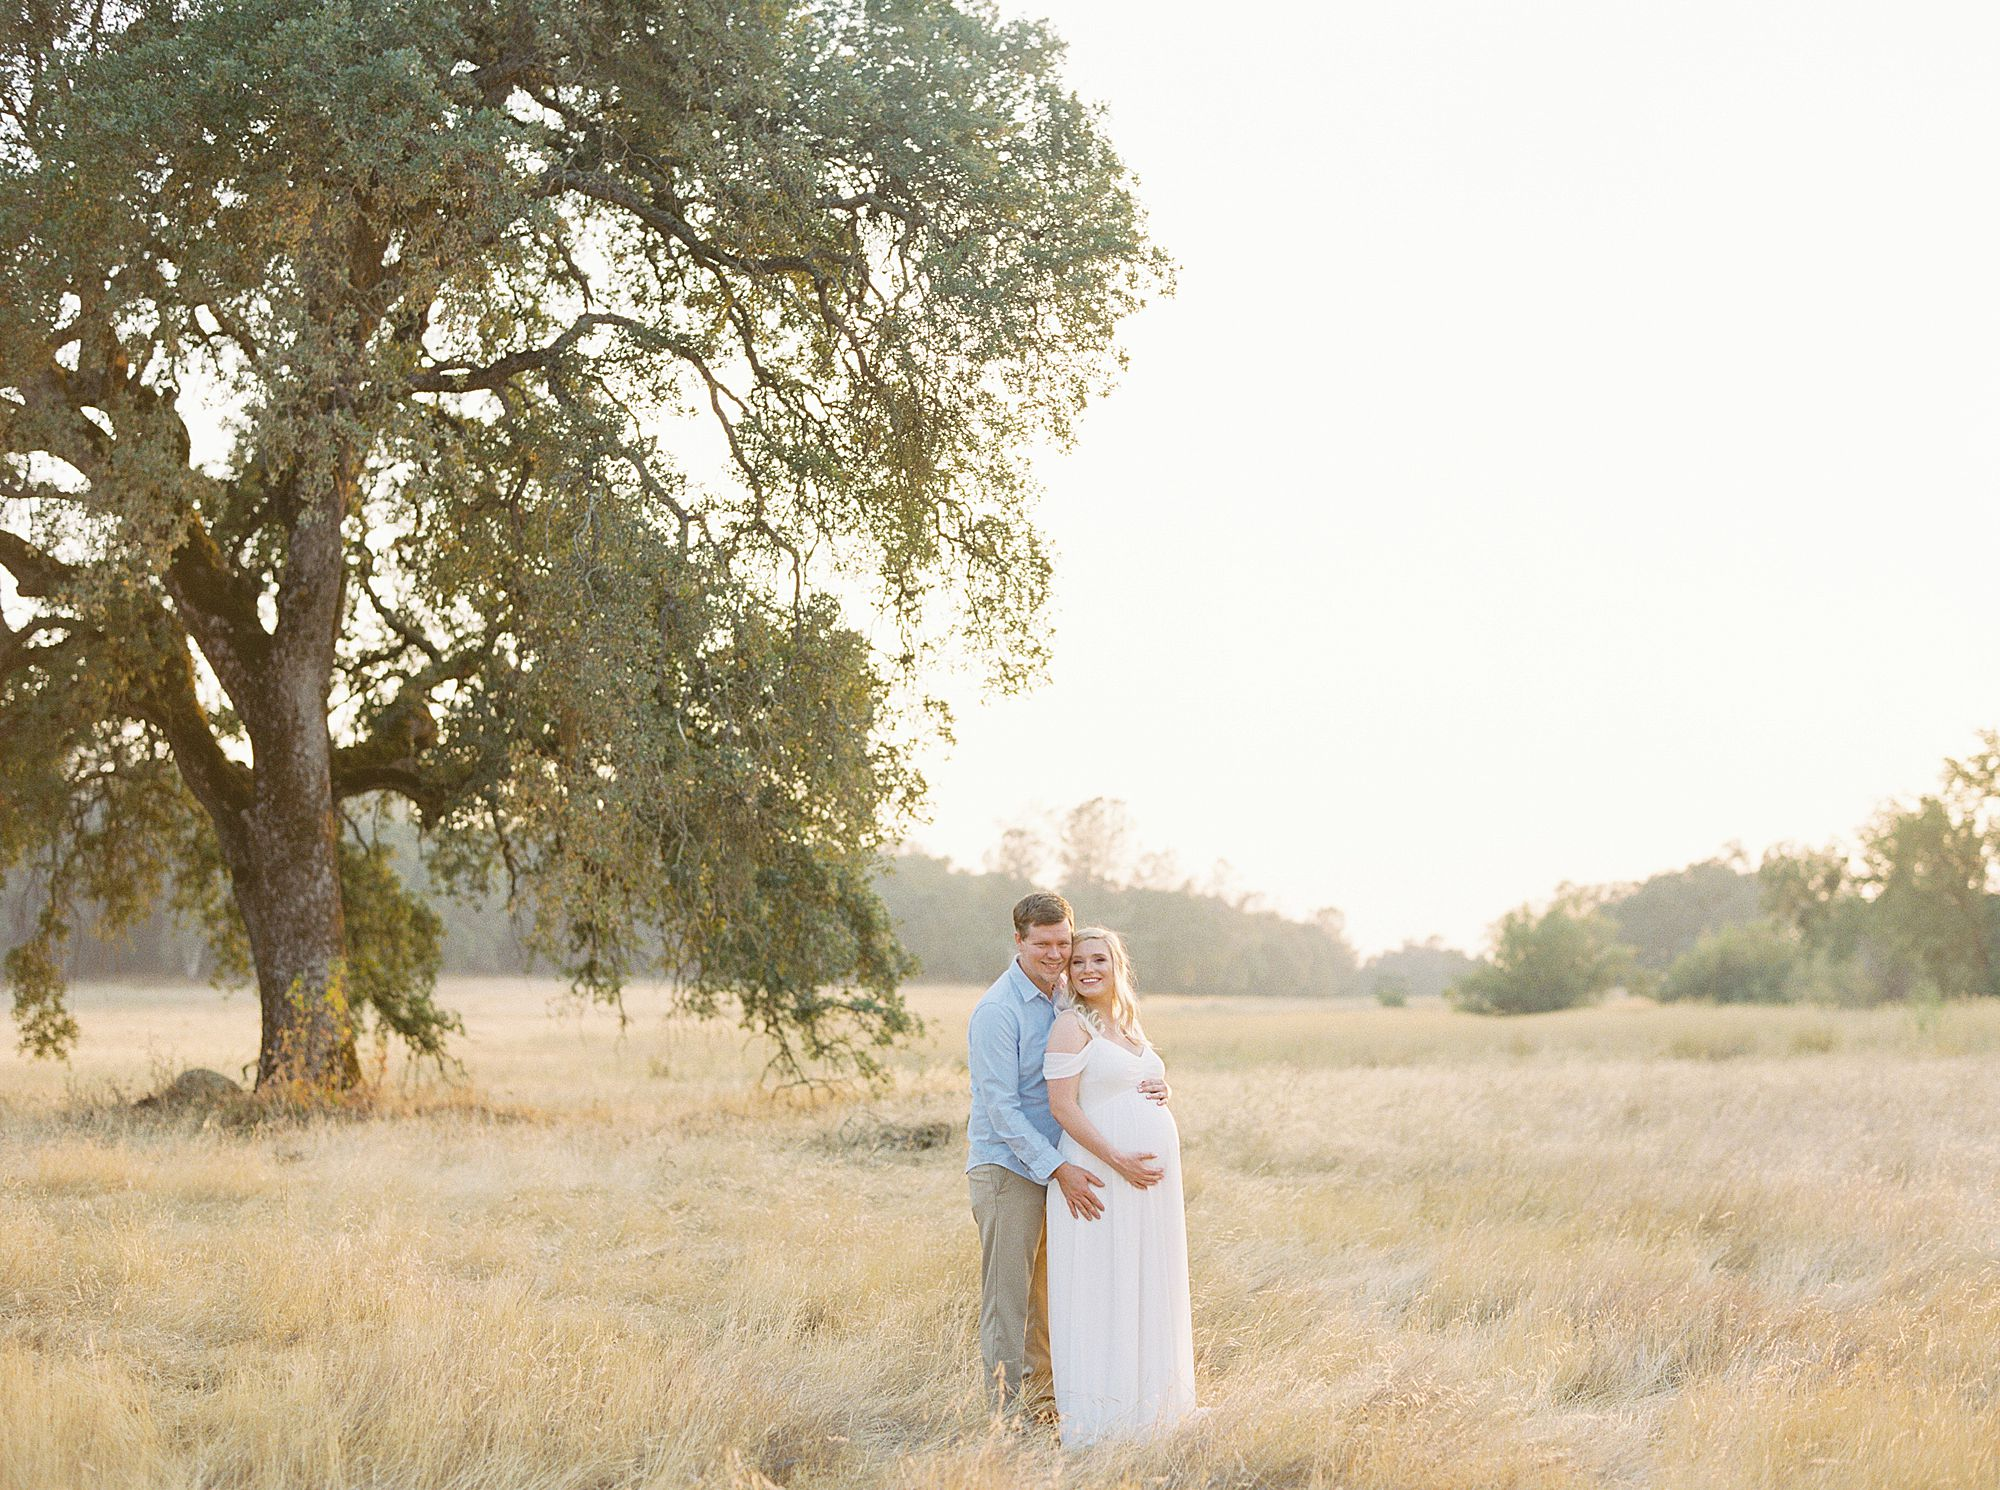 Golden Sacramento Maternity - Hannah and Connor - Ashley Baumgartner - Sacramento Maternity Photographer_0001.jpg